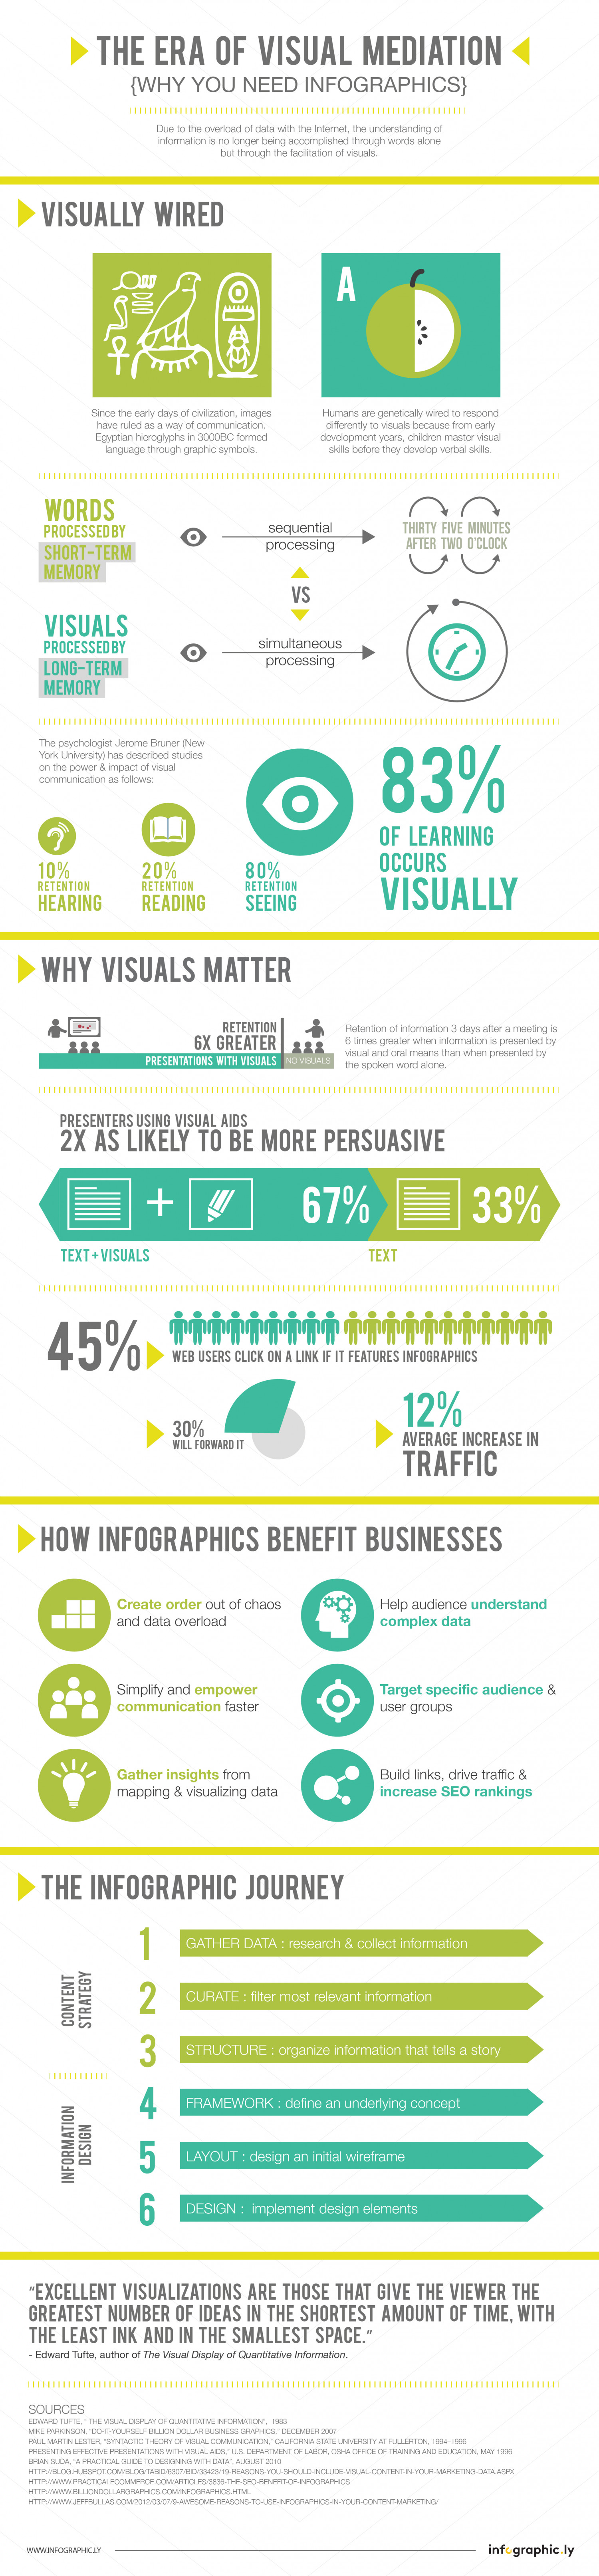 The Era of Visual Mediation Infographic